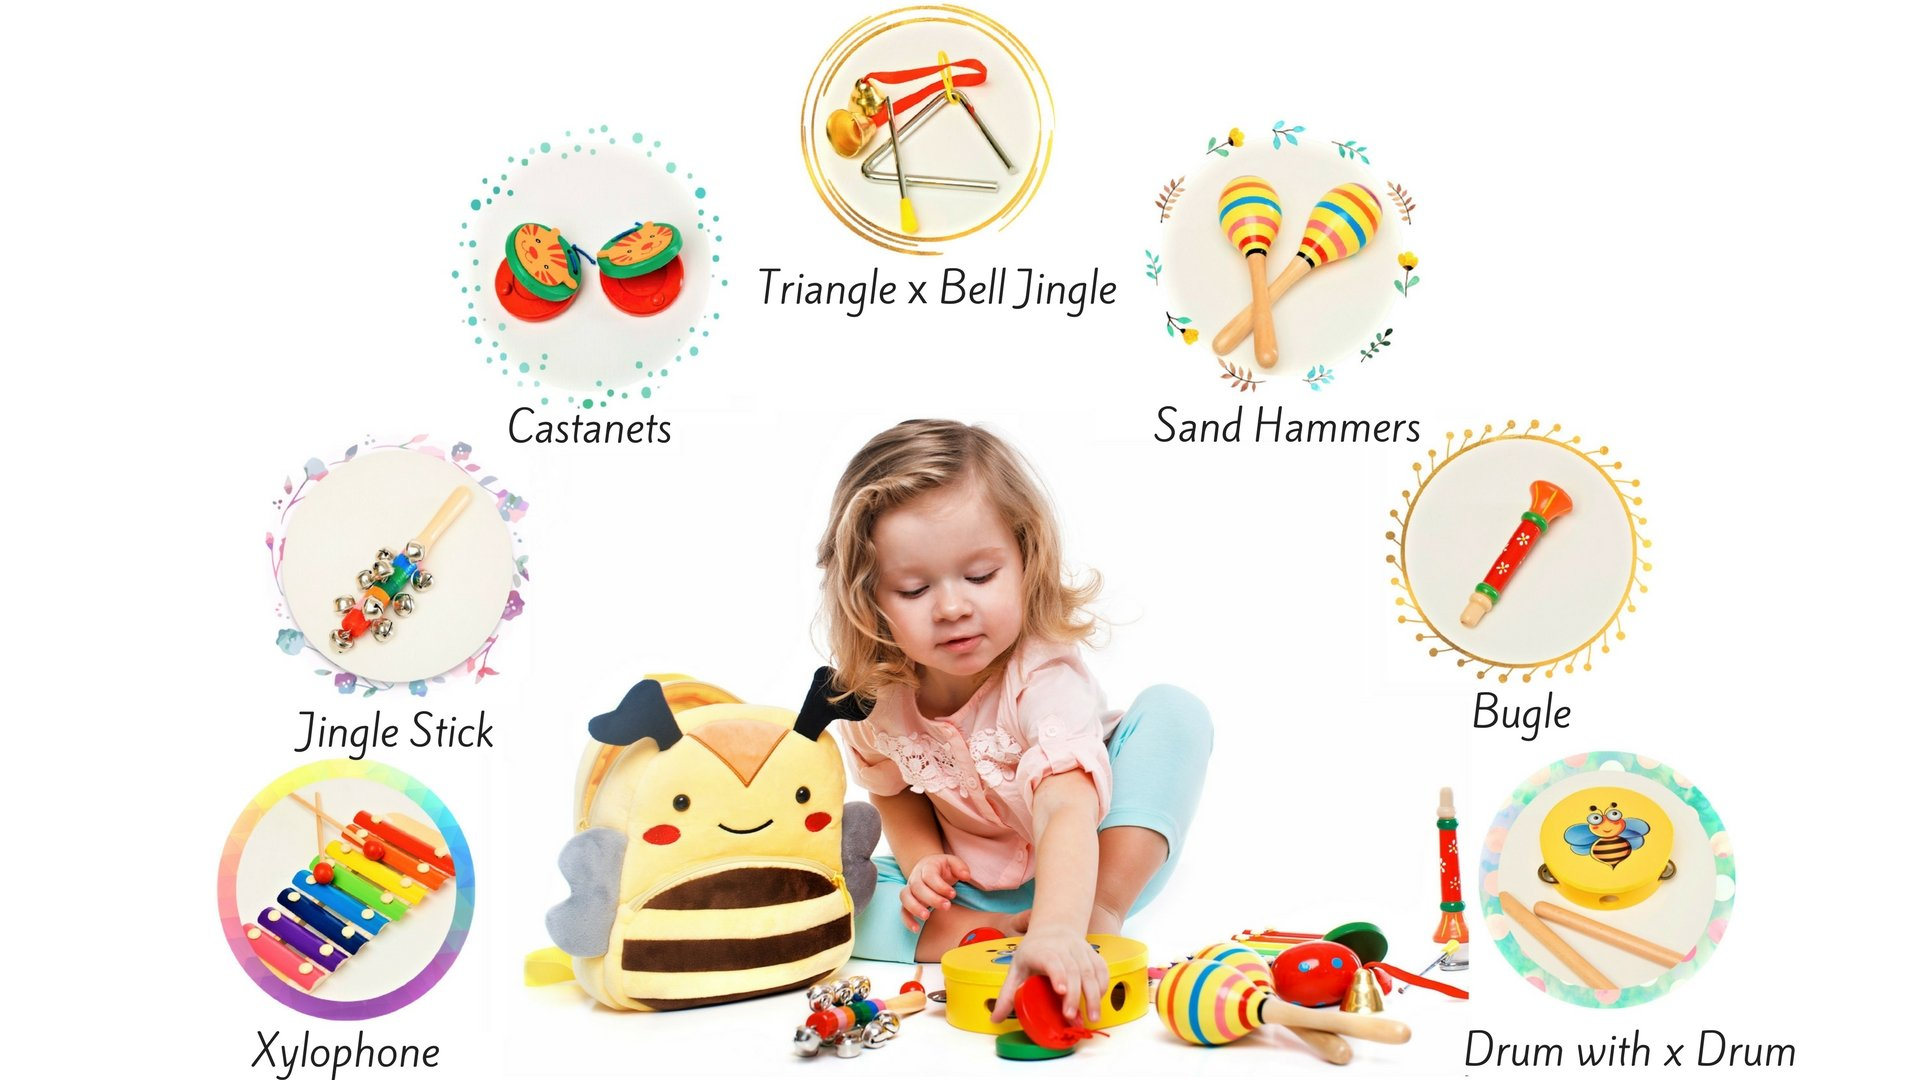 Musical Toys - Musical Instrument - Music Set - Baby Musical Instruments - Music Toys - Musical Toys for Girls & Boys - Musical Play Set - Premium Gift Musical Set 17Pcs with Cute Carrying Bee Bag